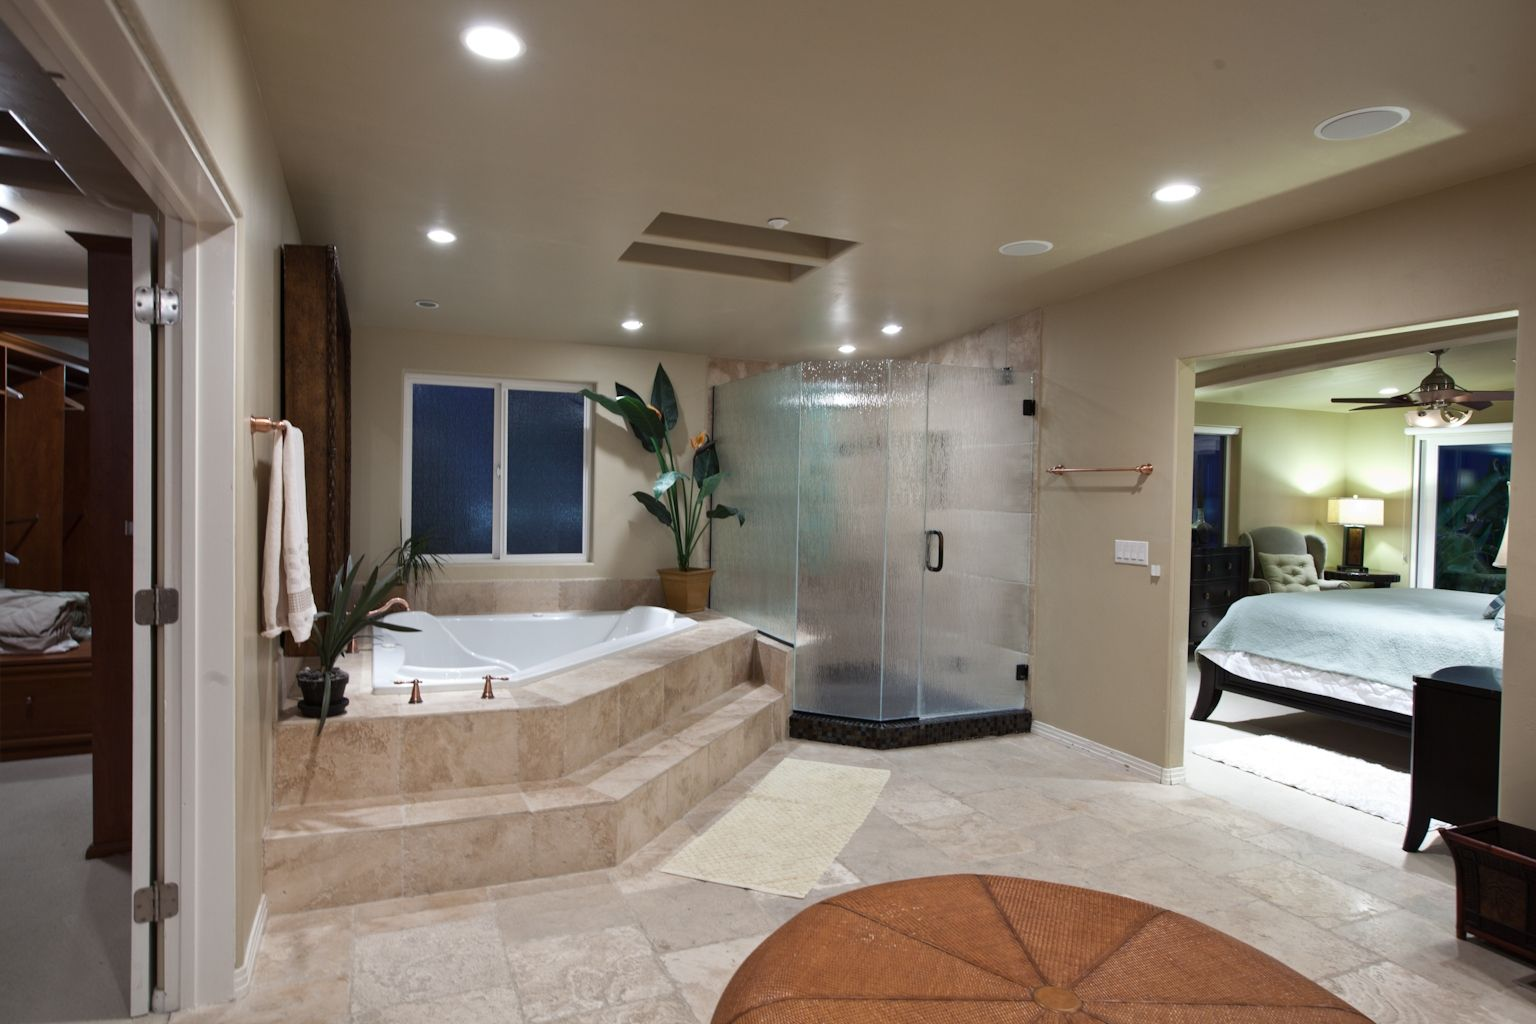 Master bathroom designs master bathroom bedroom interior for Bathroom room ideas